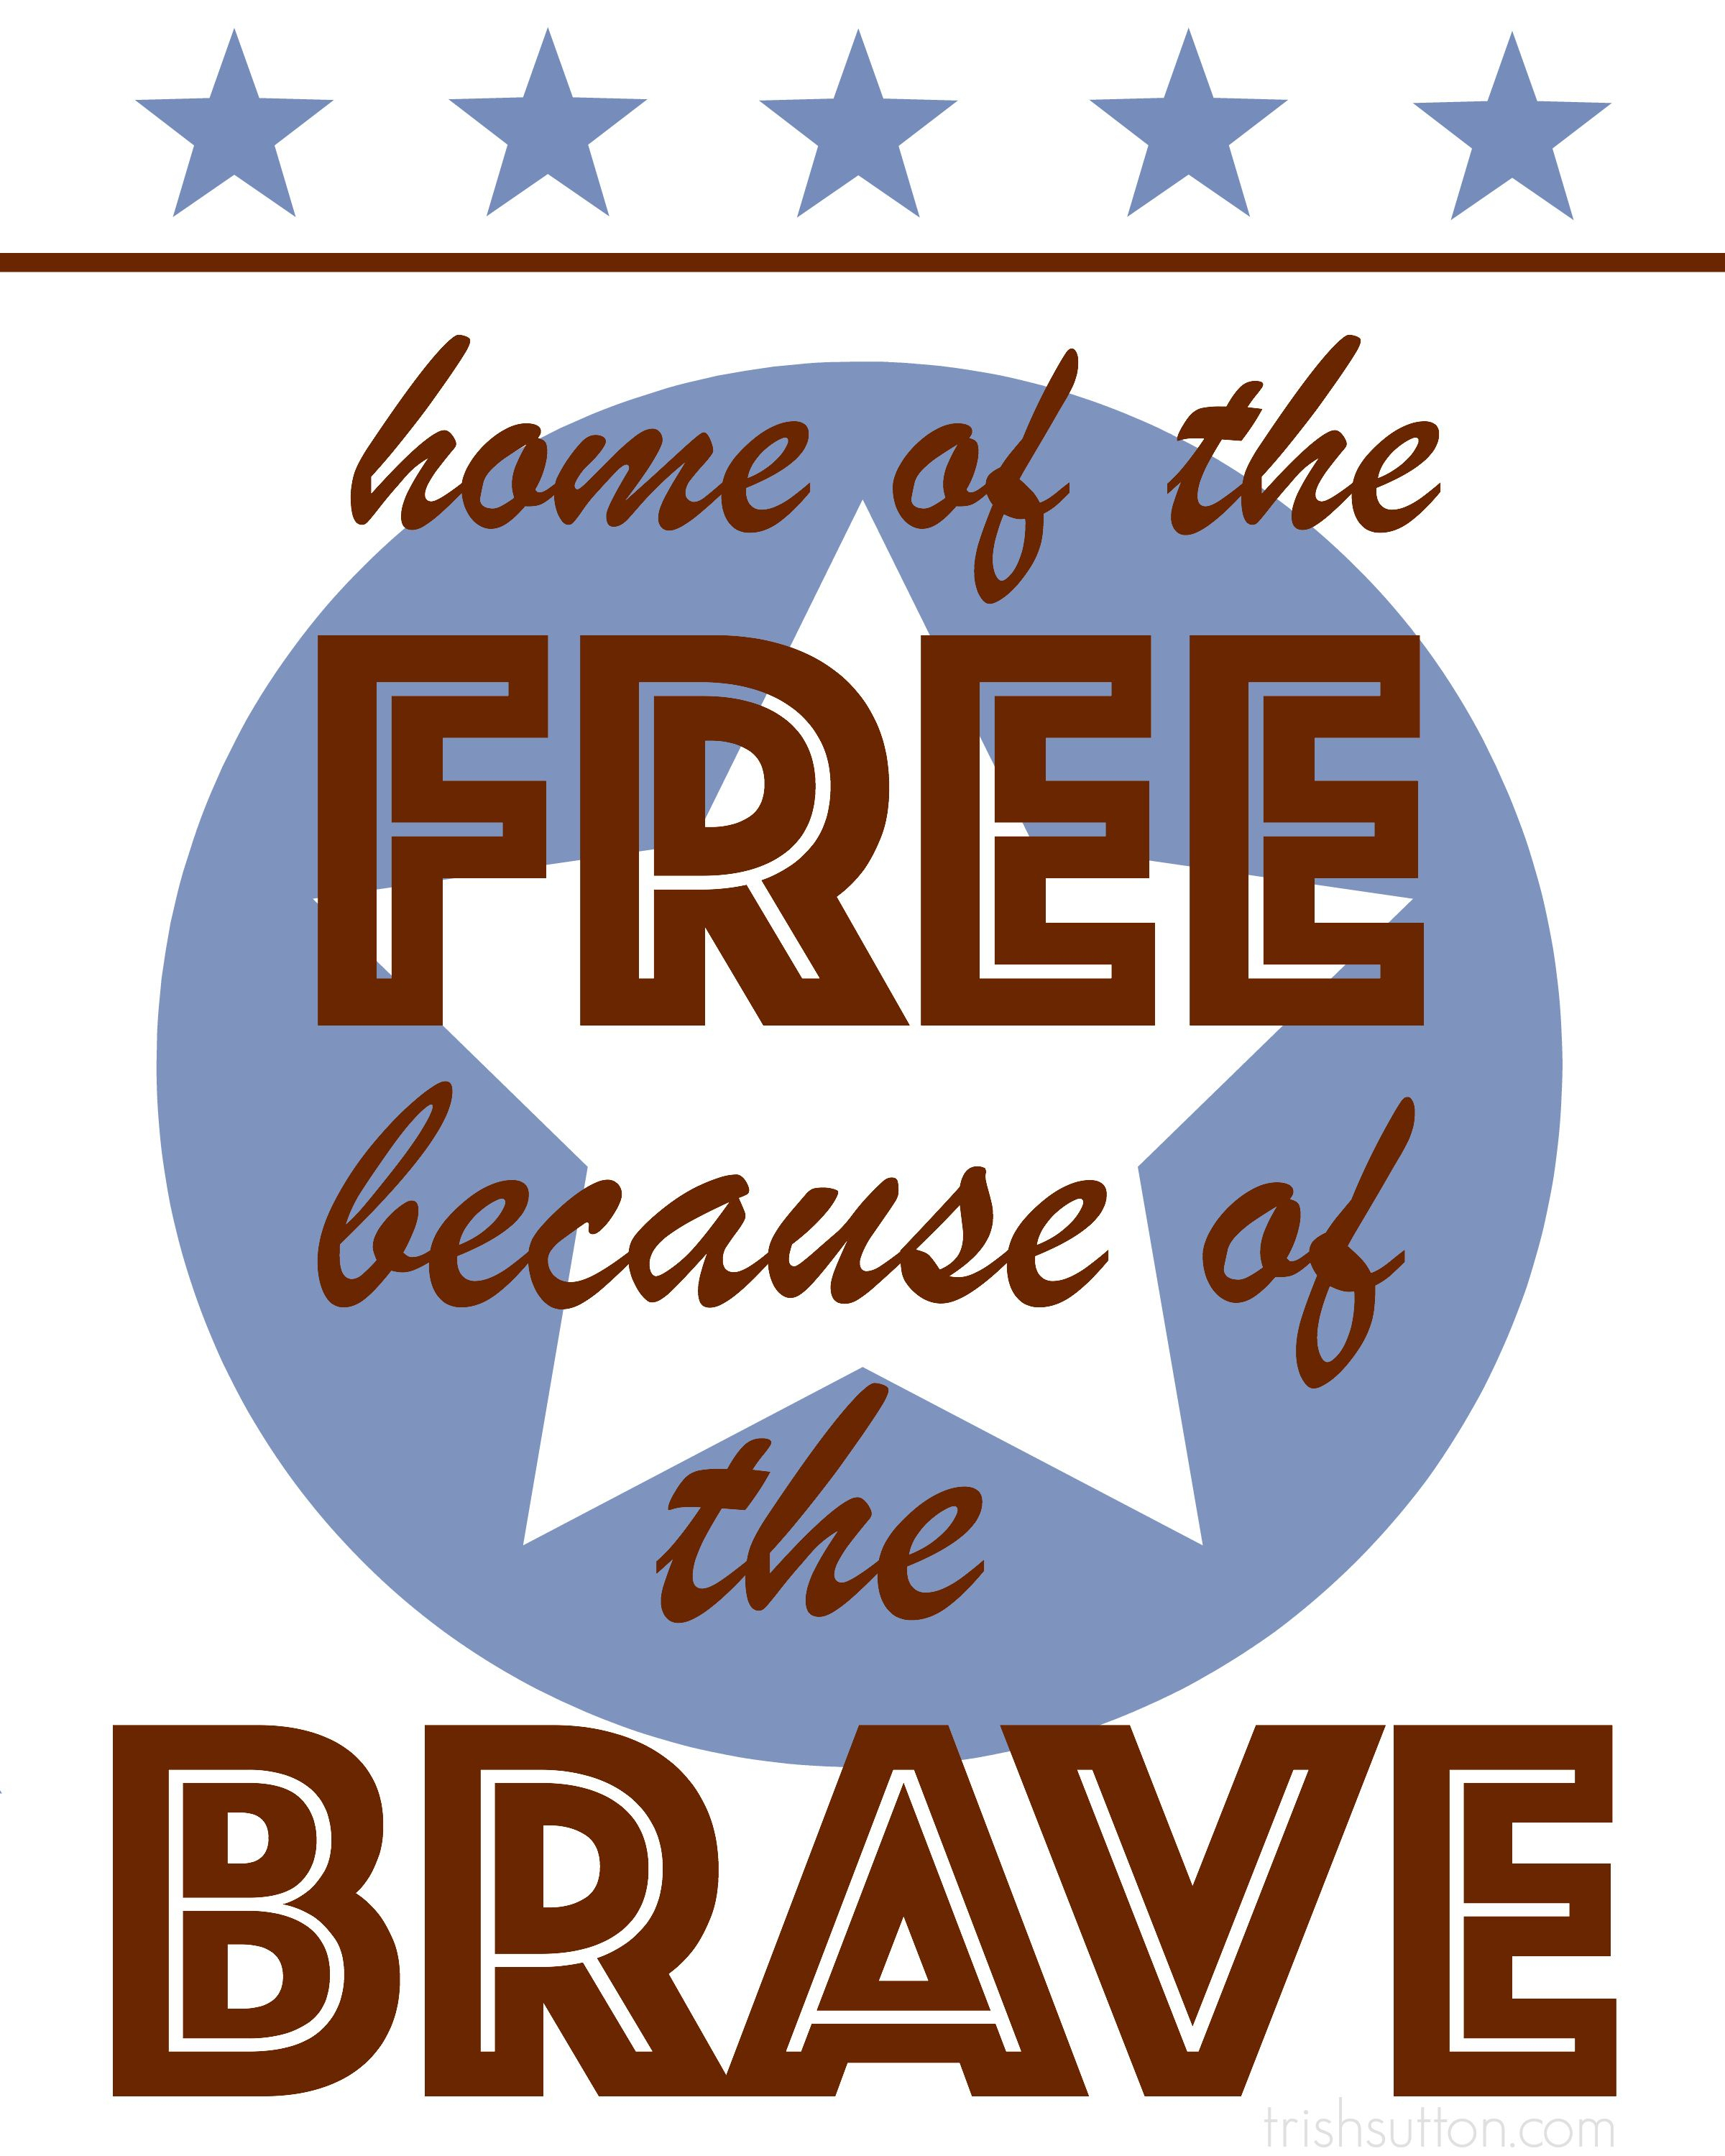 Free Printable; Home Of The Free Because Of The Brave   Trishsutton - Home Of The Free Because Of The Brave Printable